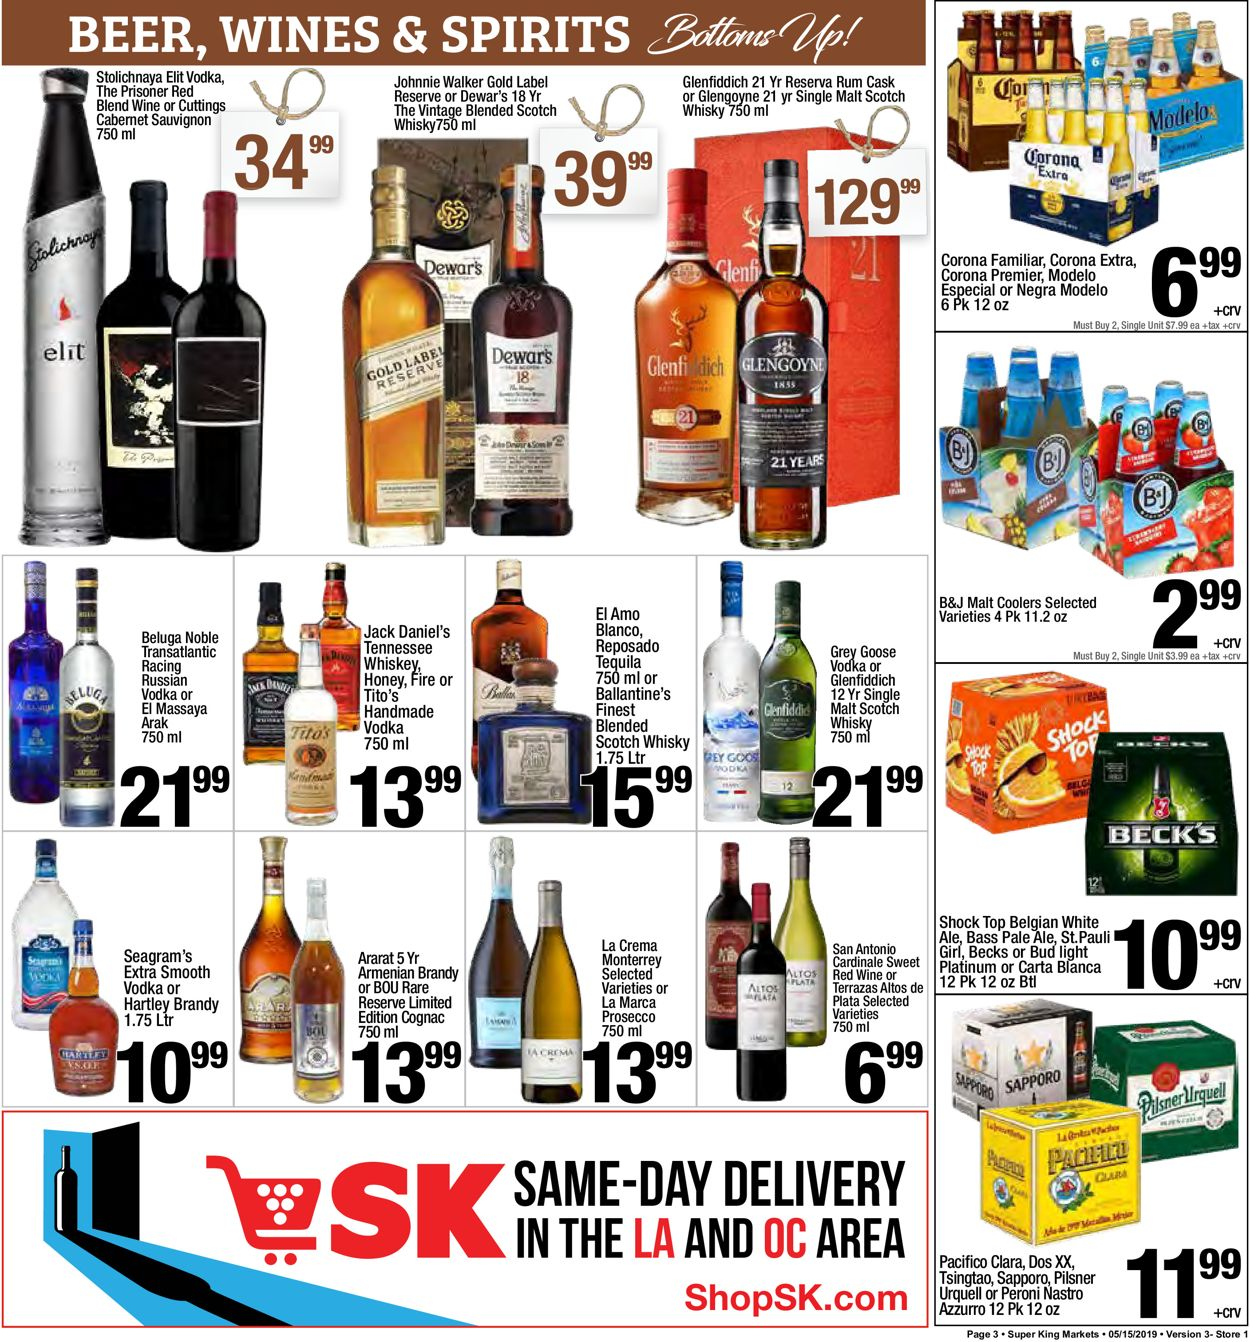 Super King Market Current Weekly Ad 05/15